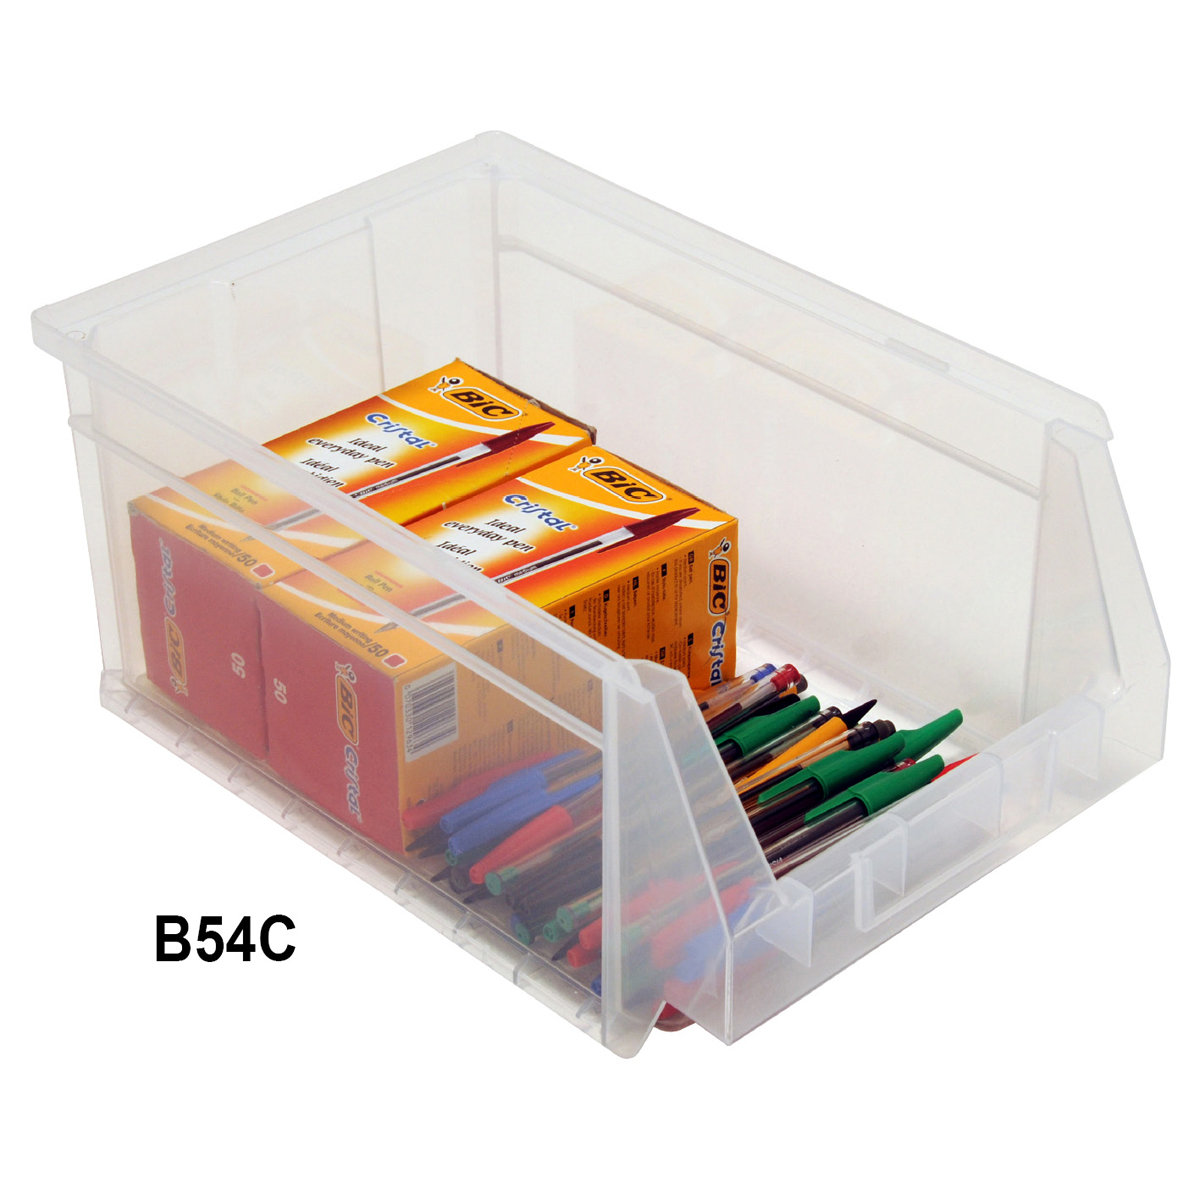 View Item Pack of 12 Premium Clear Bins 155mm High x 216mm Wide x 336mm Deep